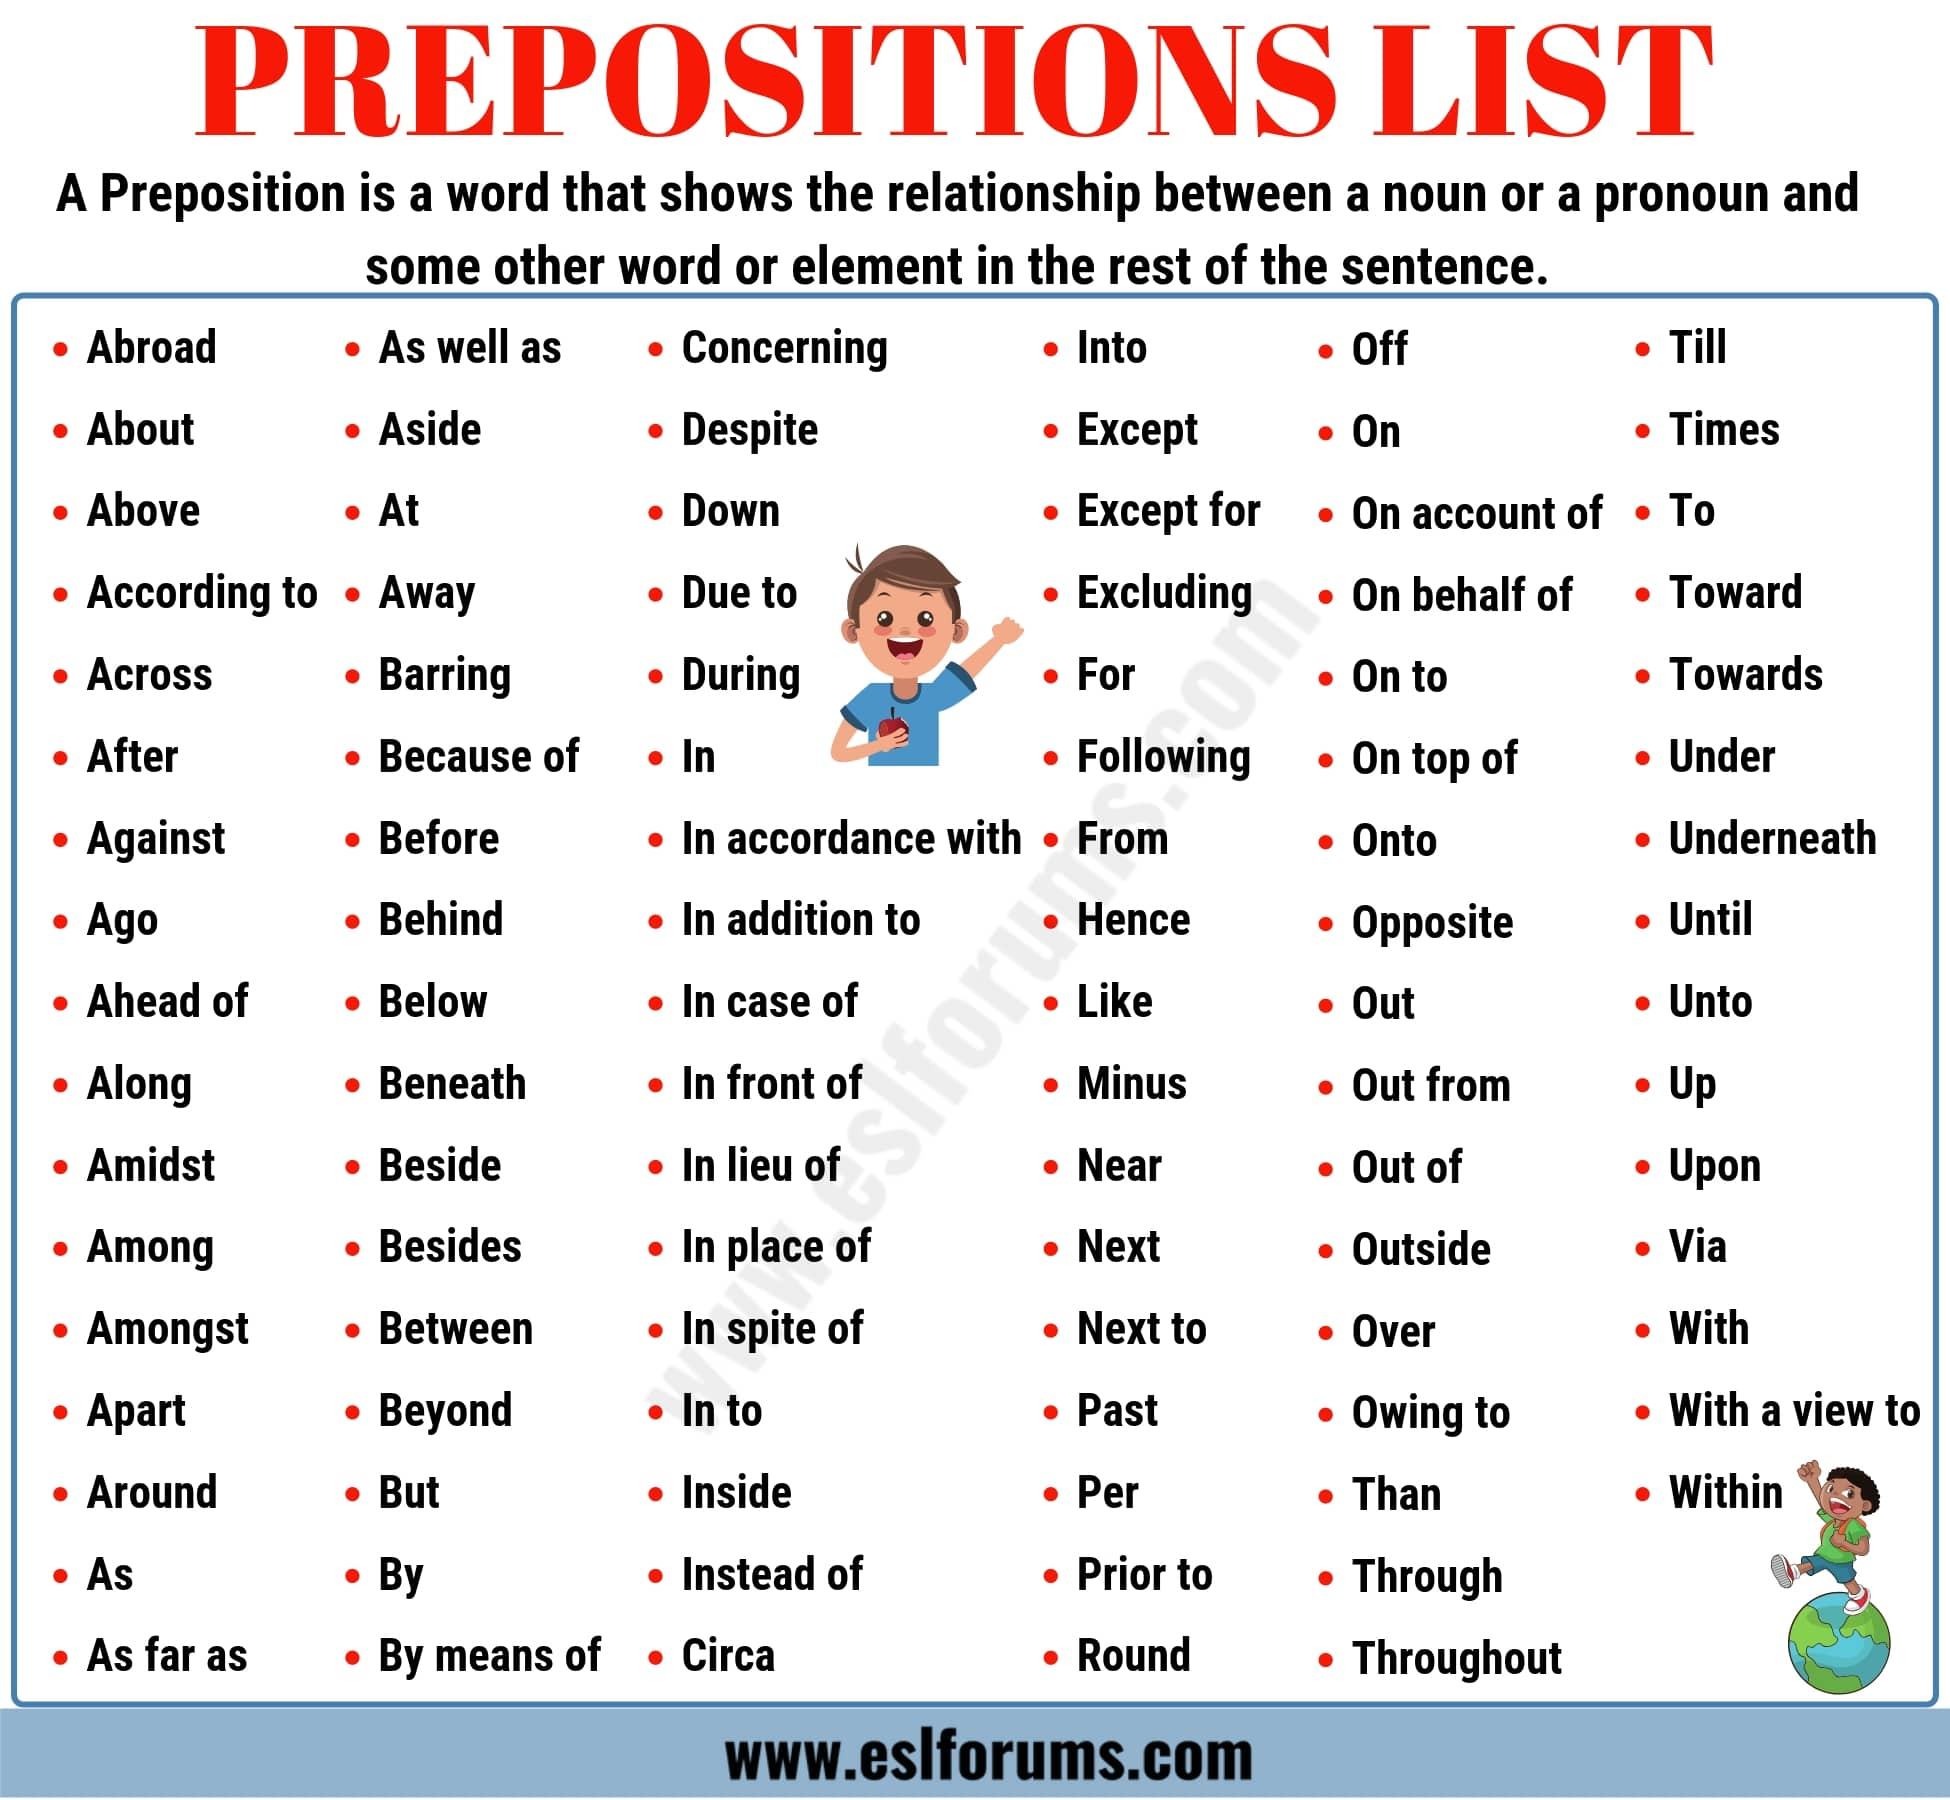 List of Prepositions: 100 Important Prepositions in English for ESL Learners!